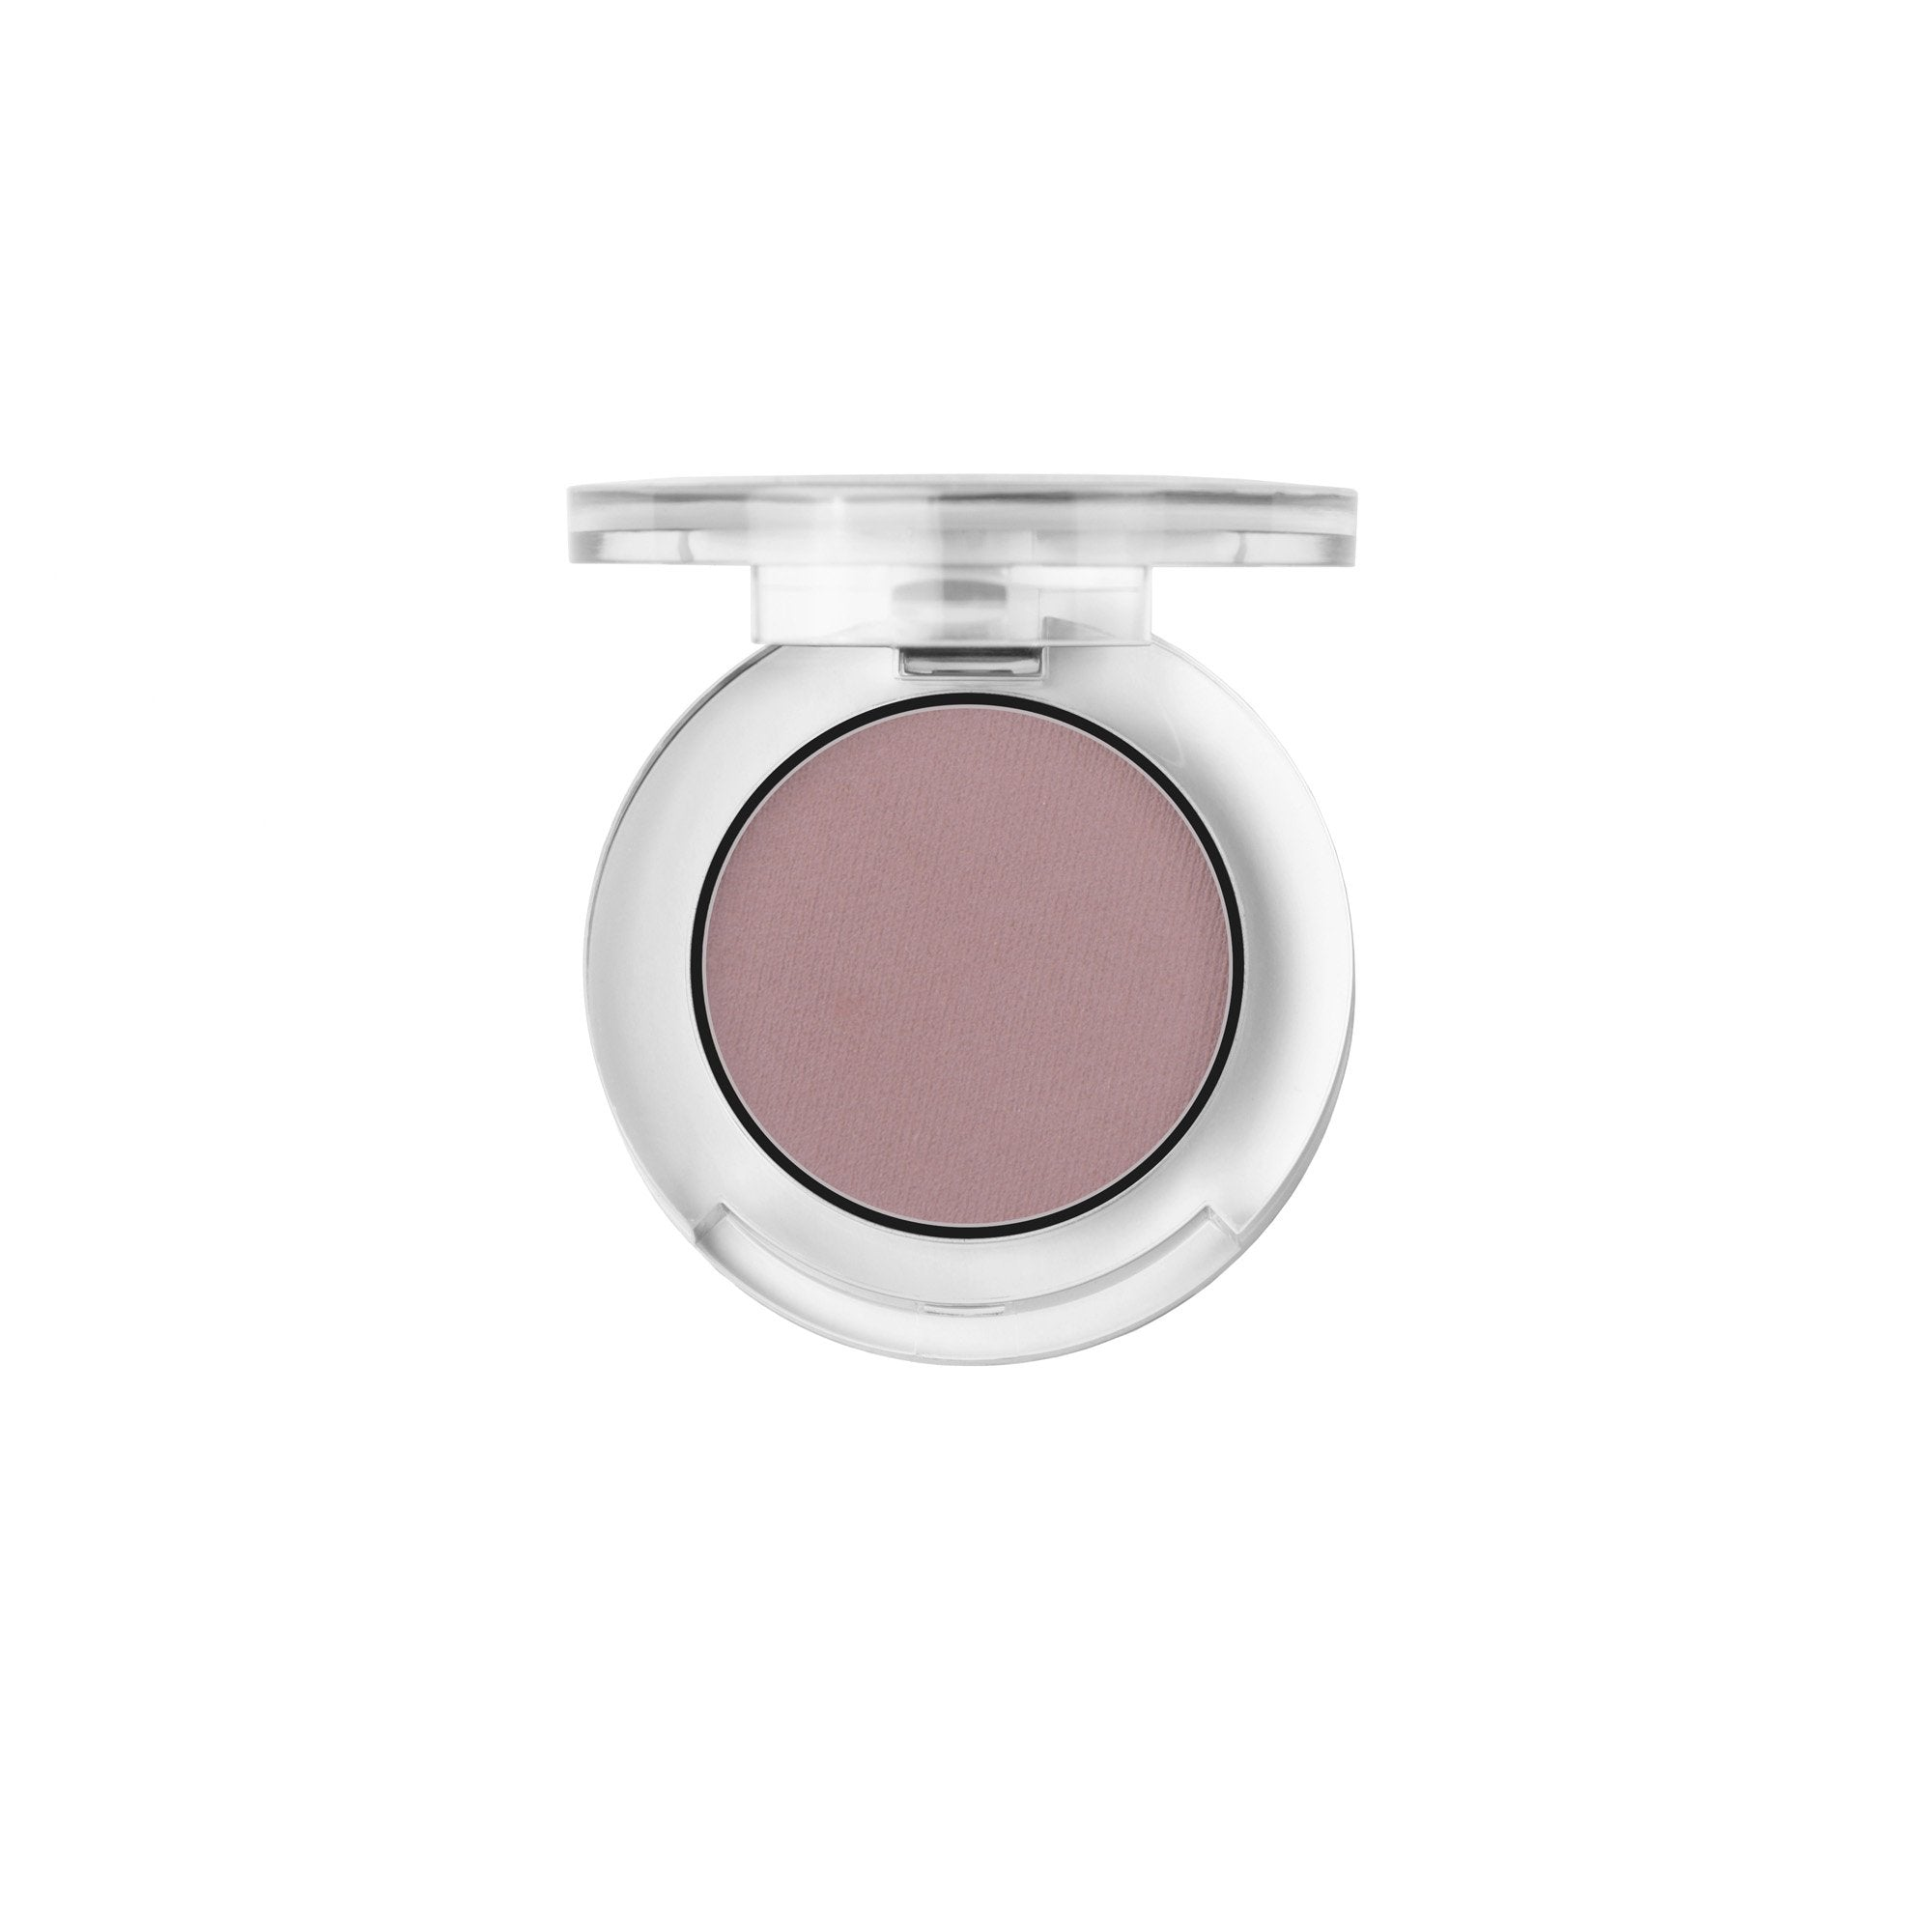 SOFT BLEND EYE SHADOW - Studio Make Up US